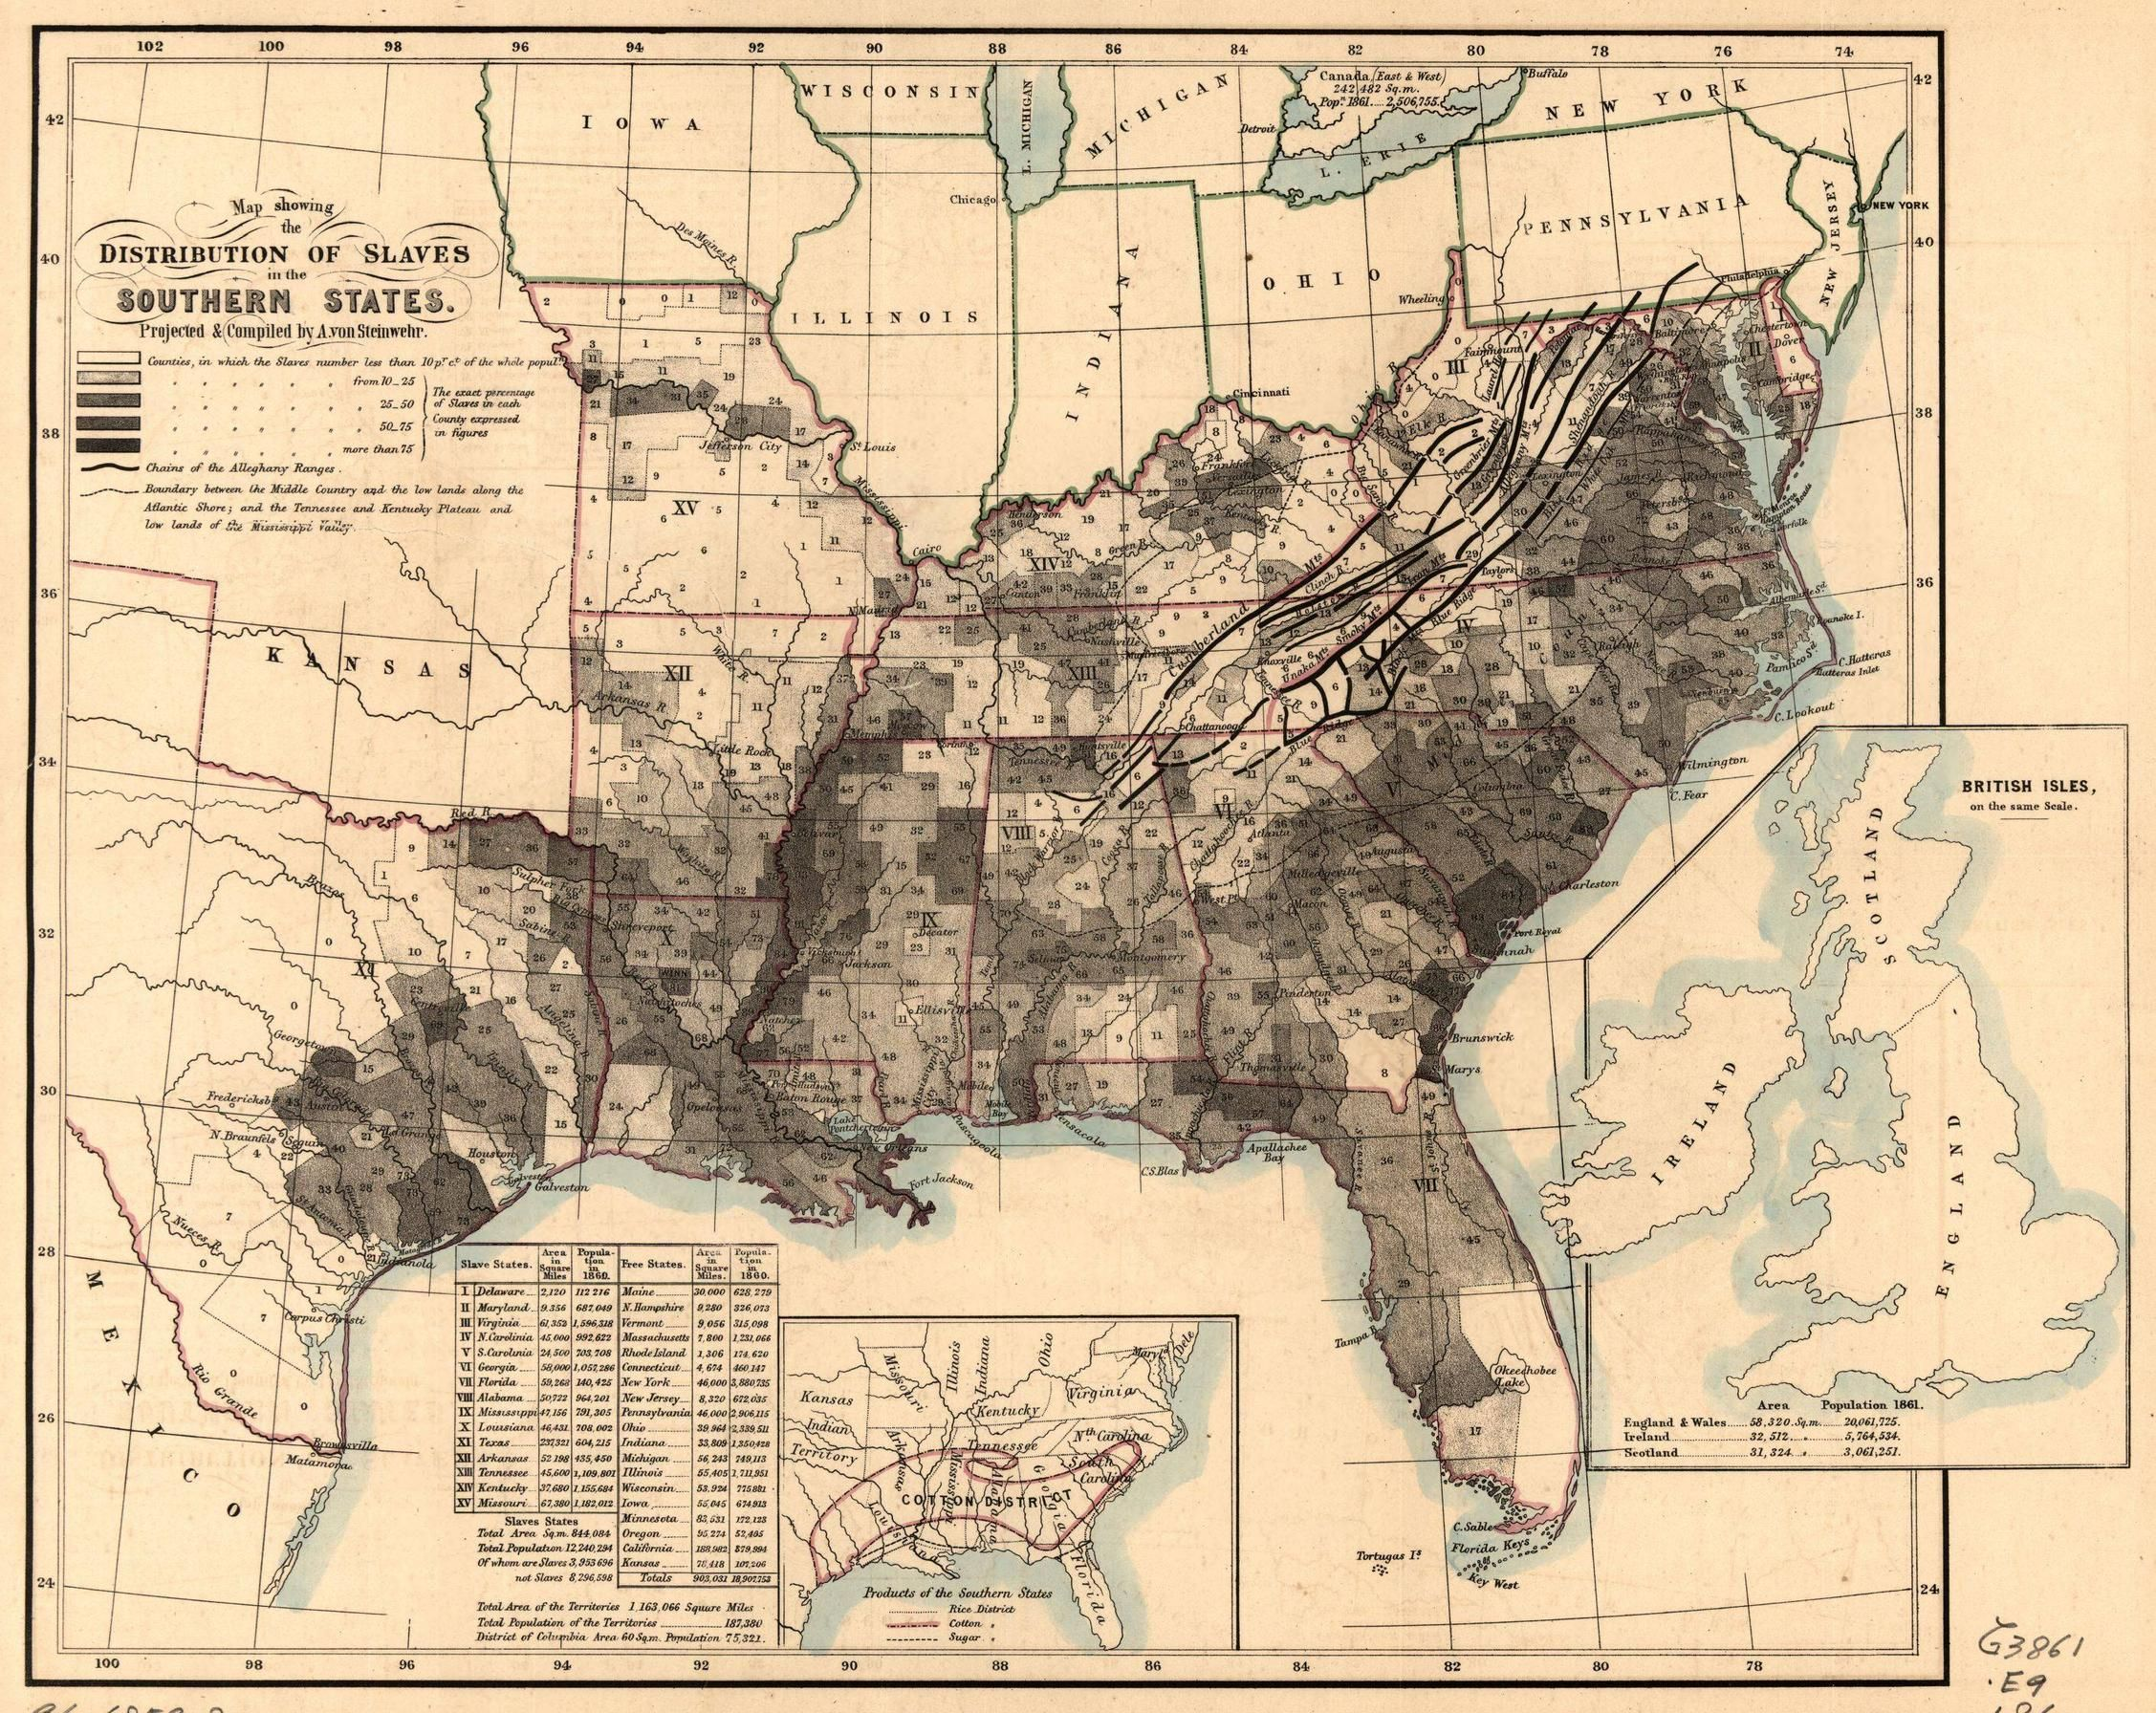 1860 \'Distribution of slaves in Southern States\' #map #slavery ...